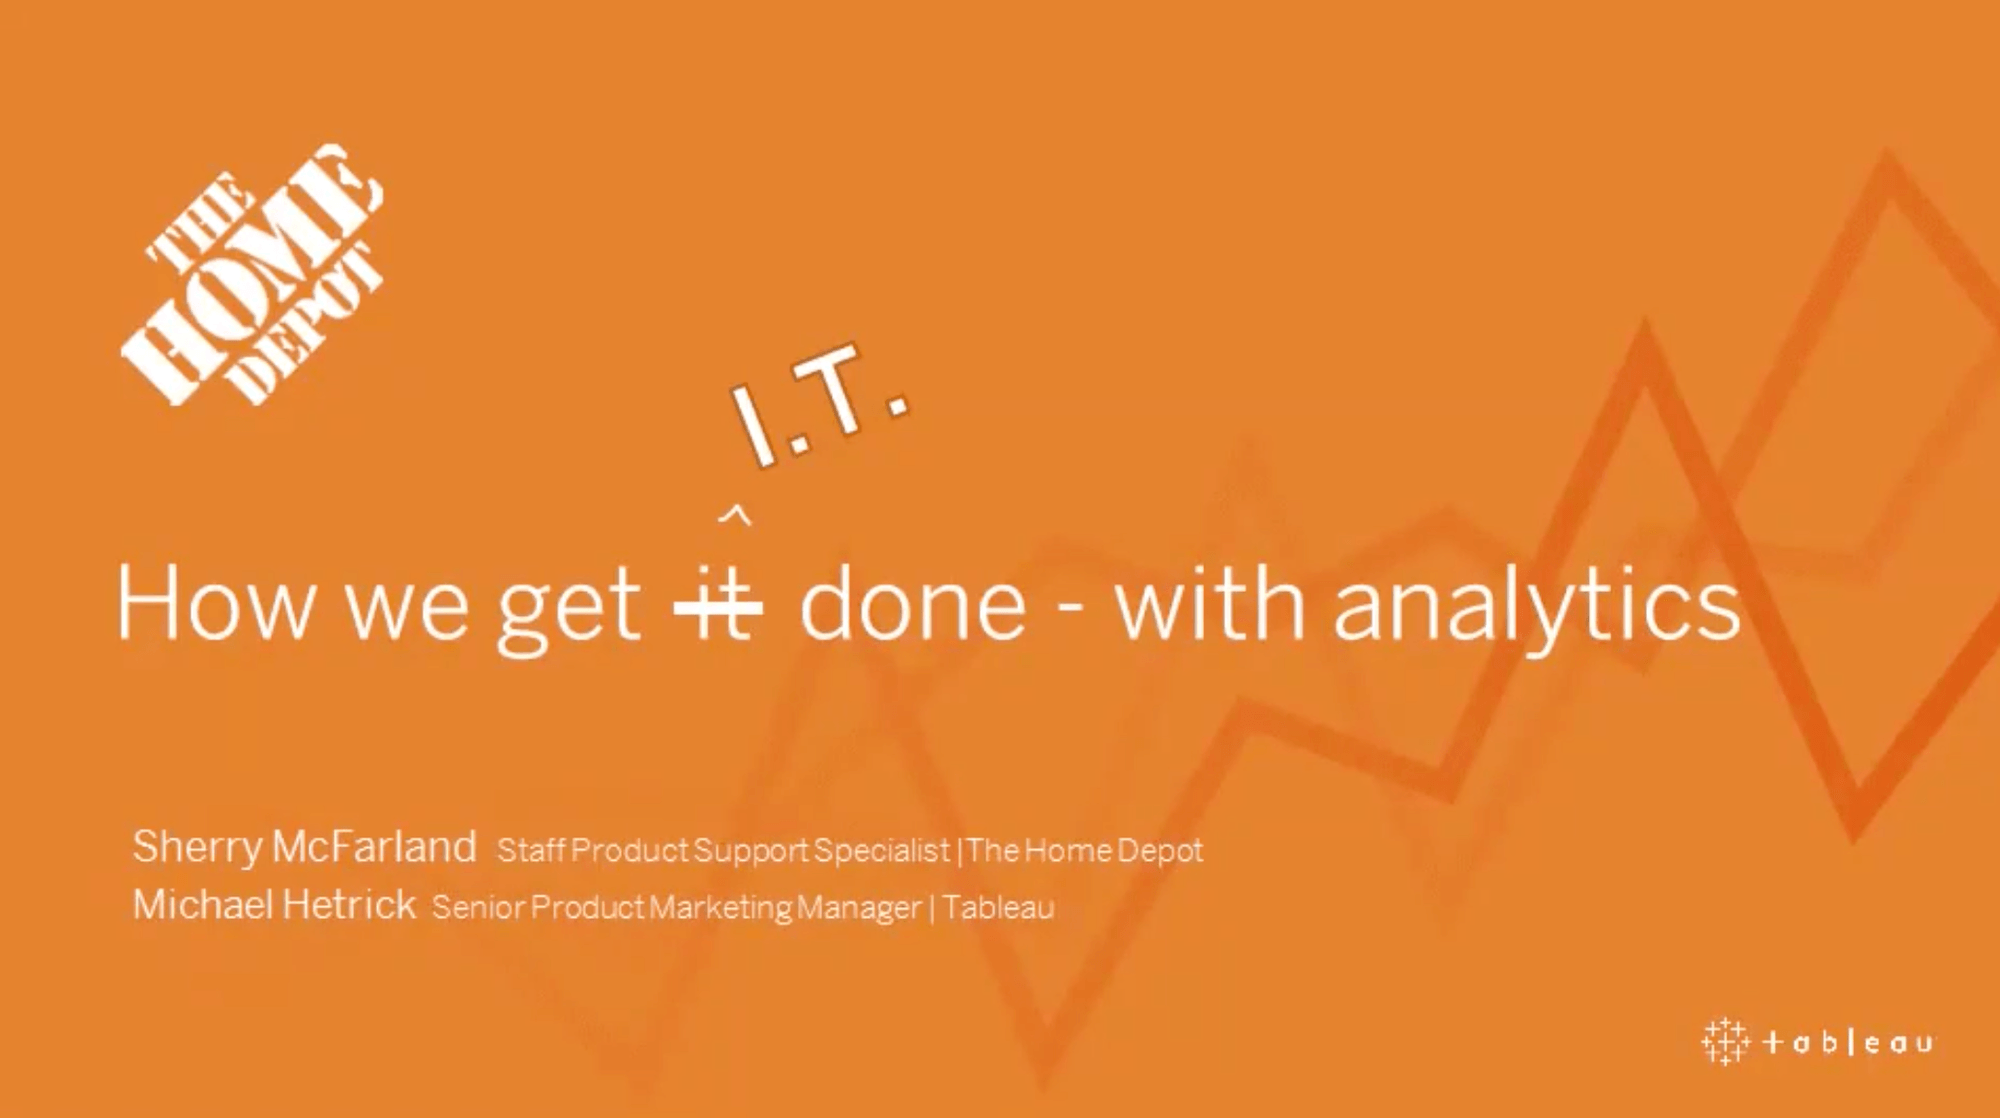 Navigate to The Home Depot: How we get IT done – with analytics